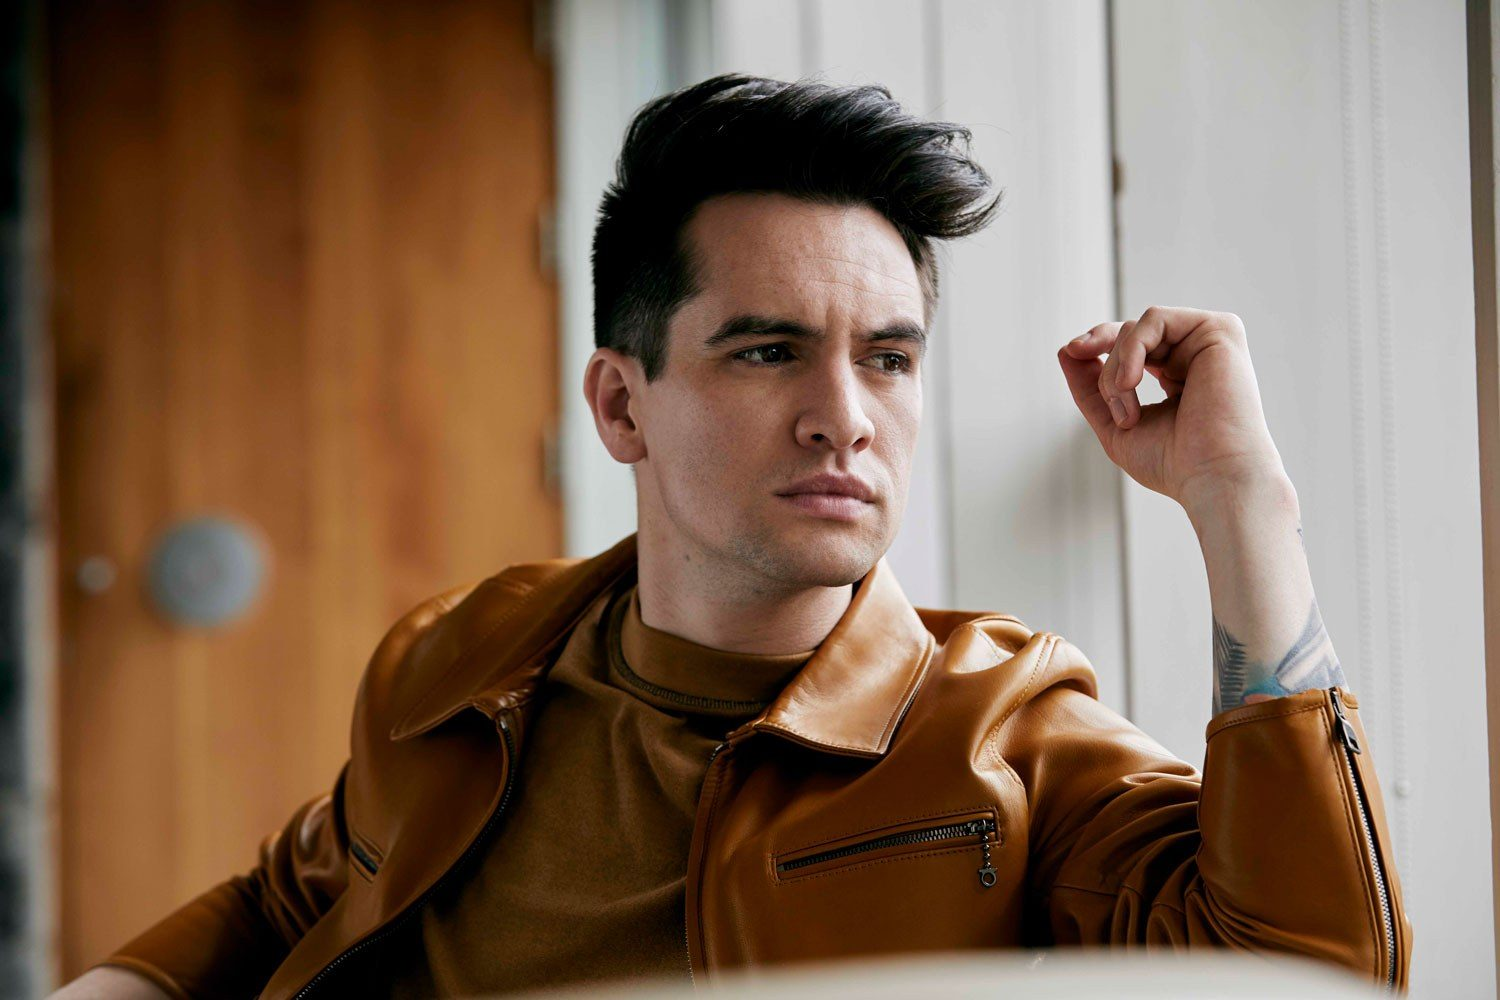 Check out Panic! At The Disco's epic new song for Frozen 2, 'Into The Unknown'